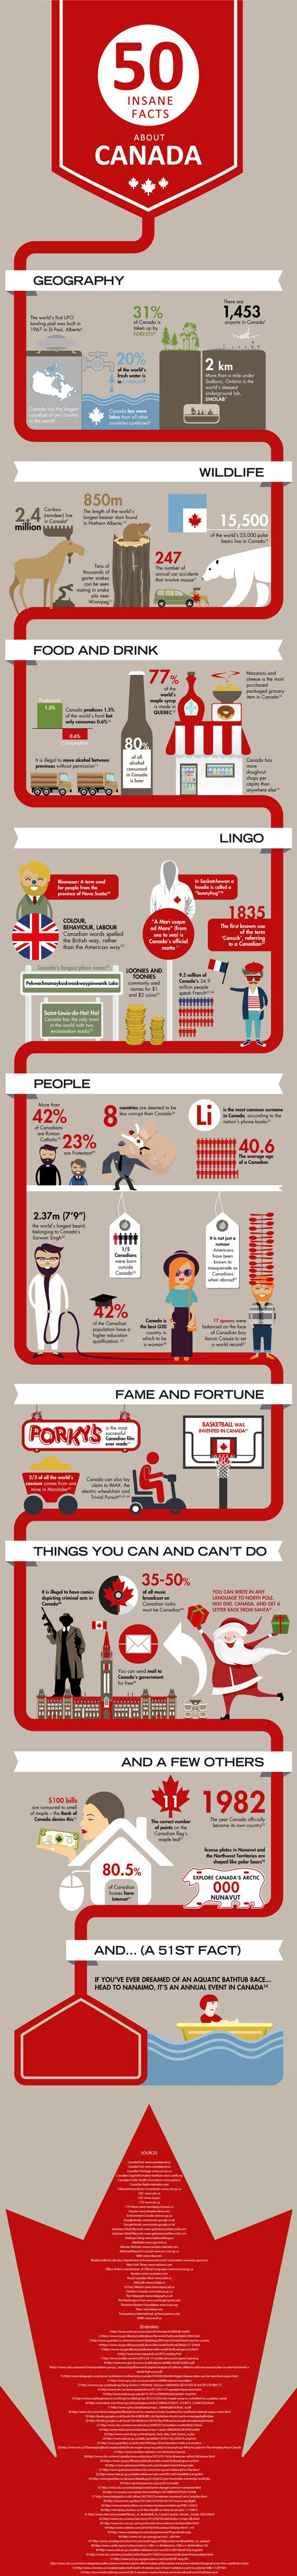 Check out this awesome infographic with 50 Insane Facts About #Canada!